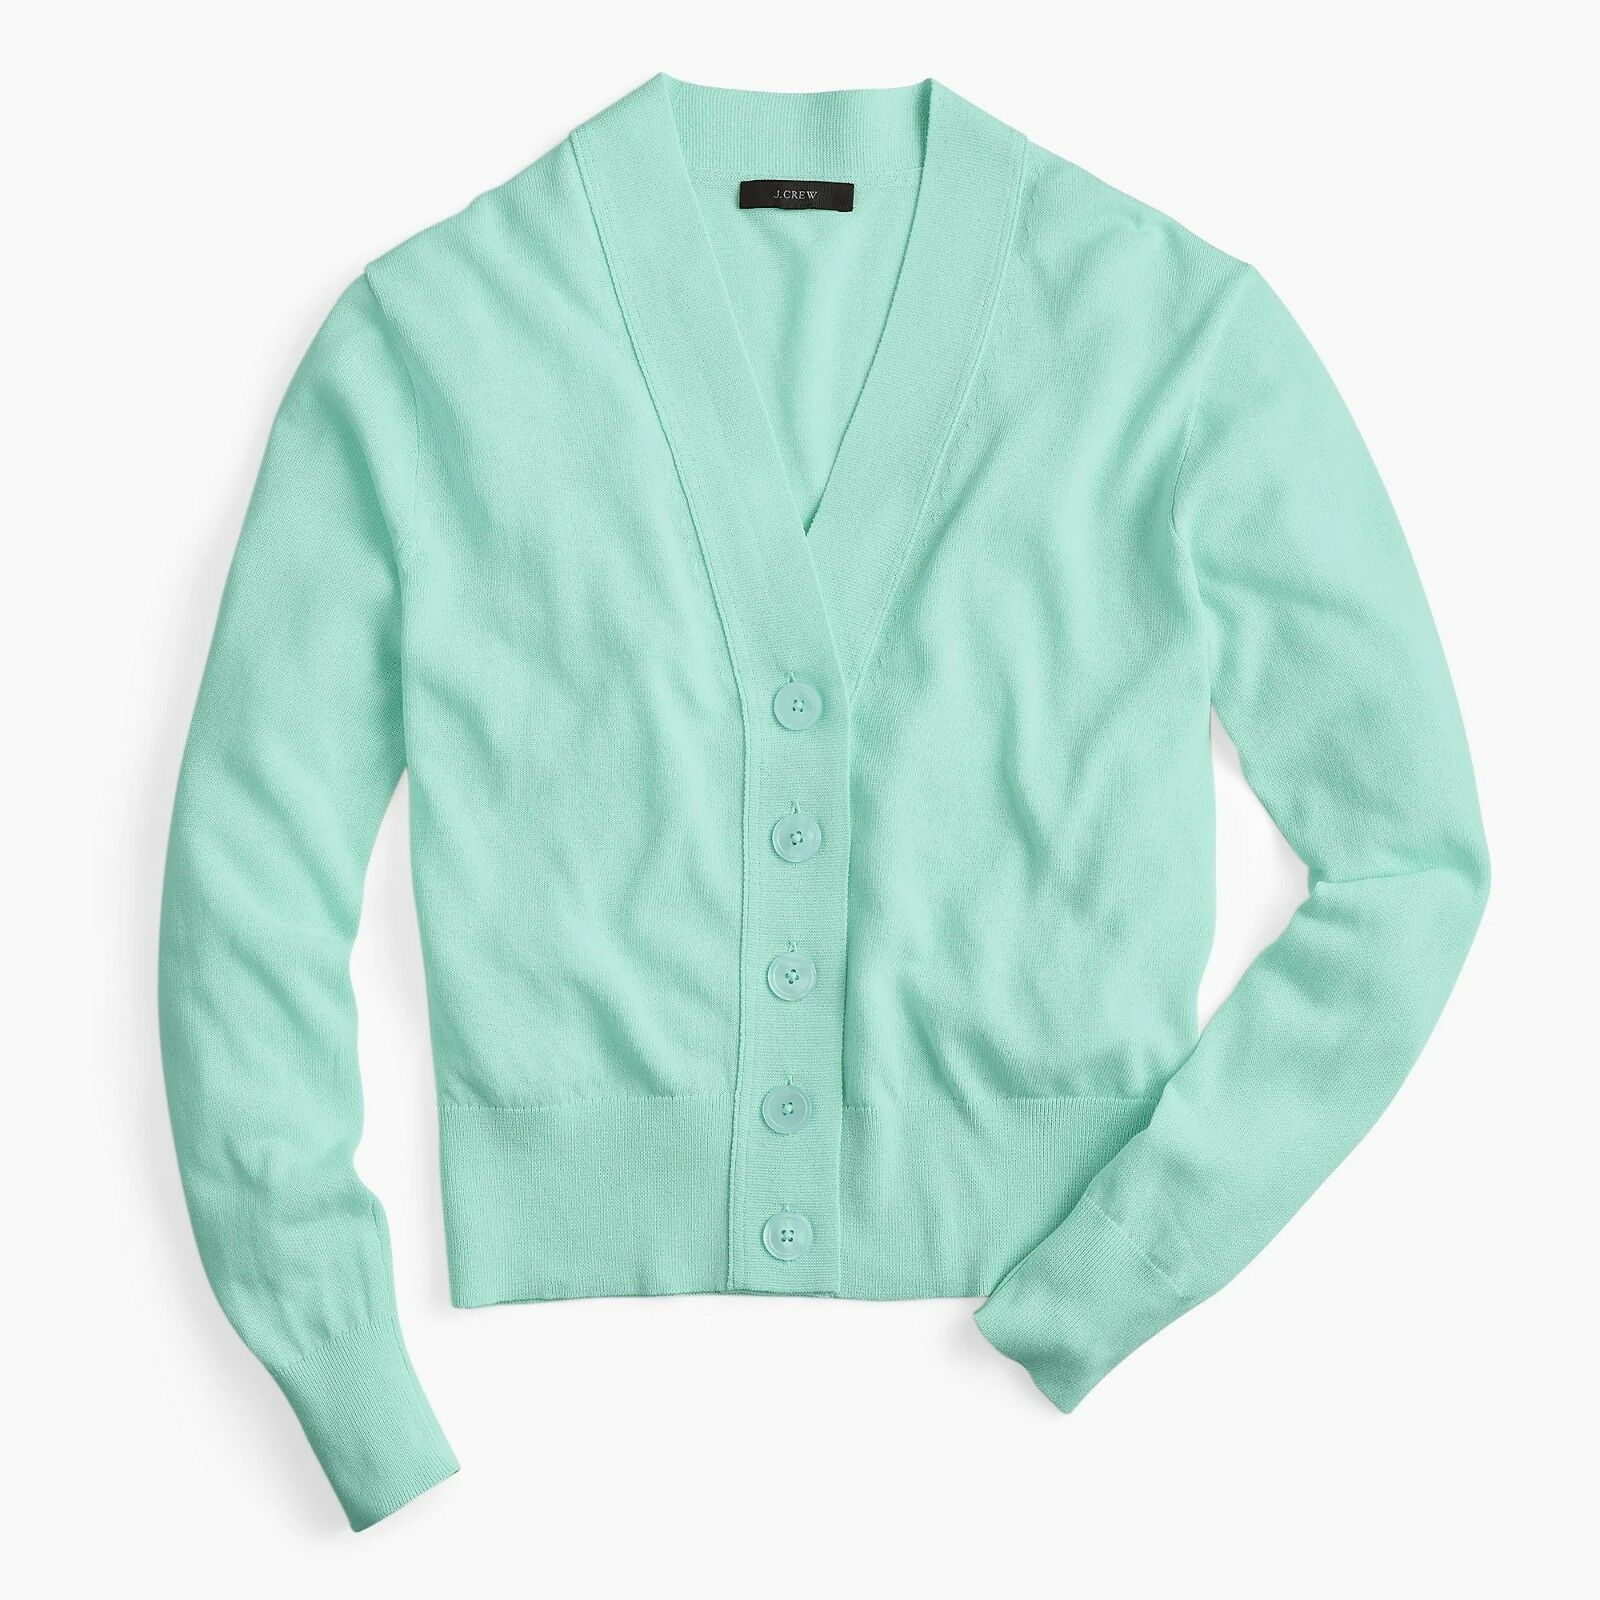 NWT J. Crew Cropped Lightweight Cardigan Sweater - Light Mint - Size Large